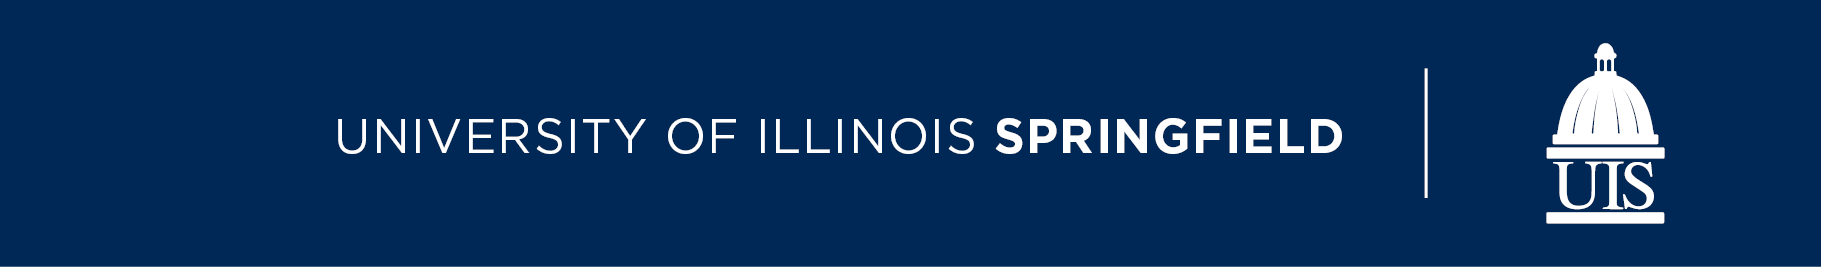 University of Illinois Springfield and UIS dome logo